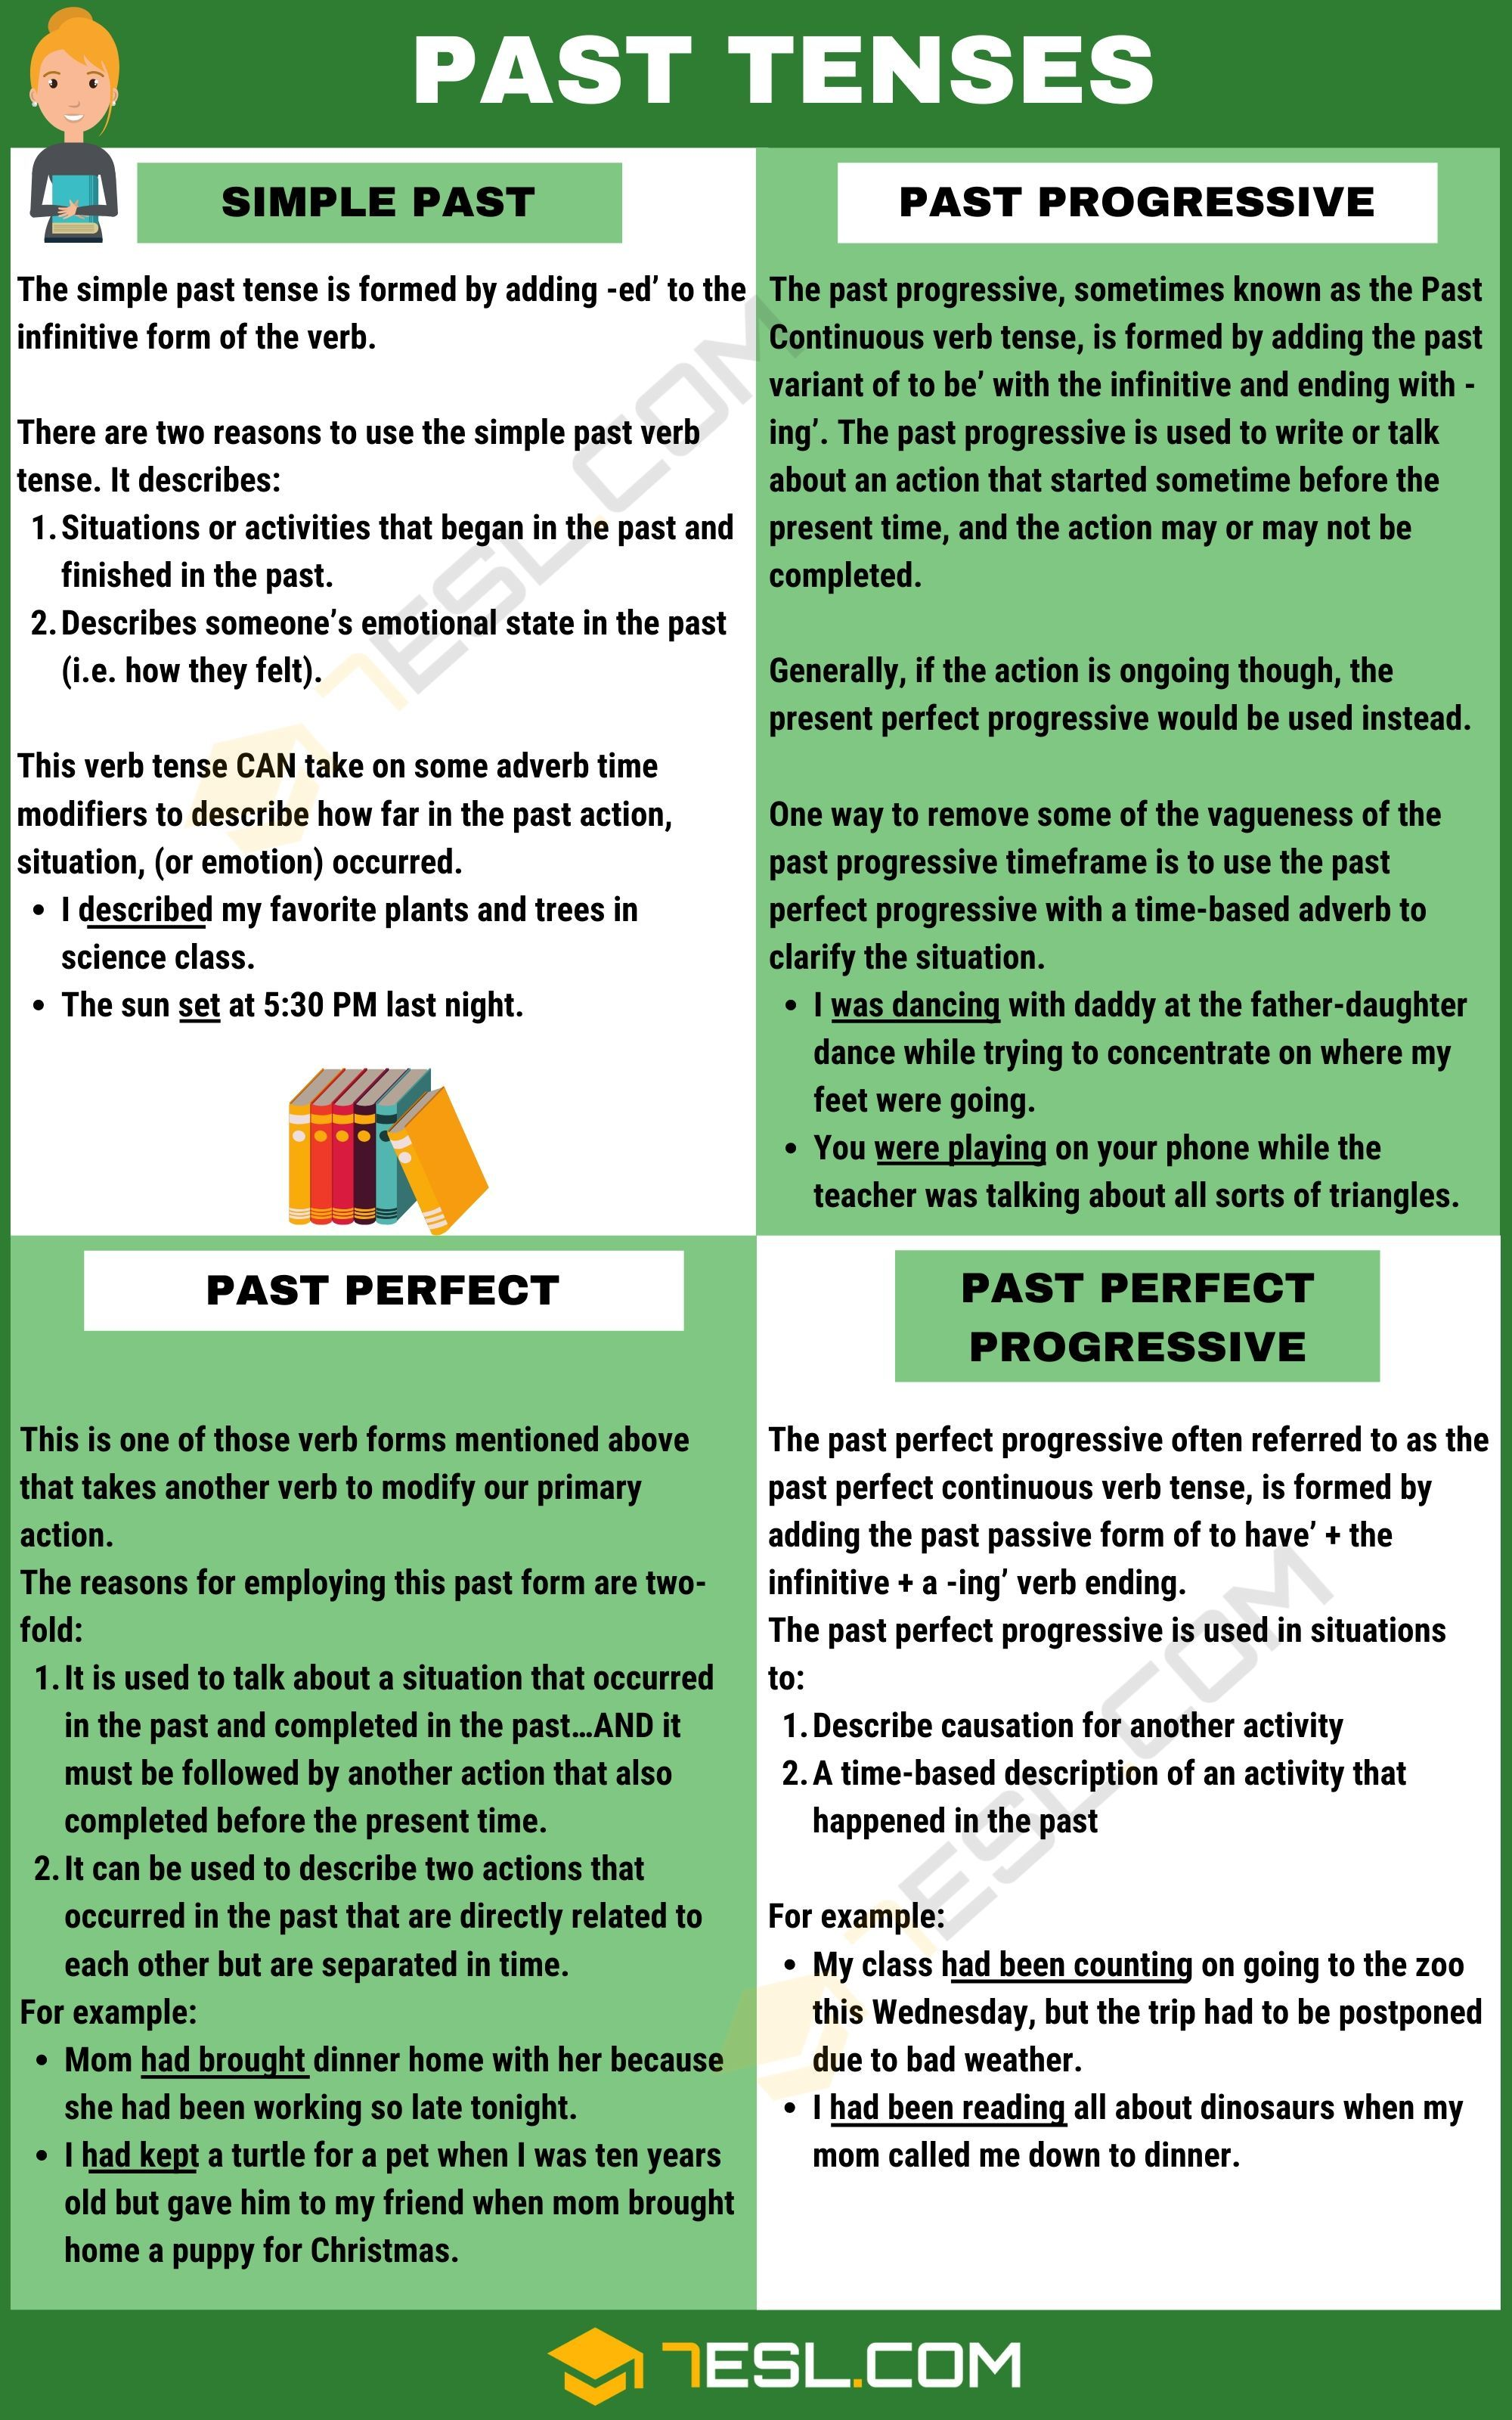 Past Tense Definition Rules And Examples Of Past Tenses